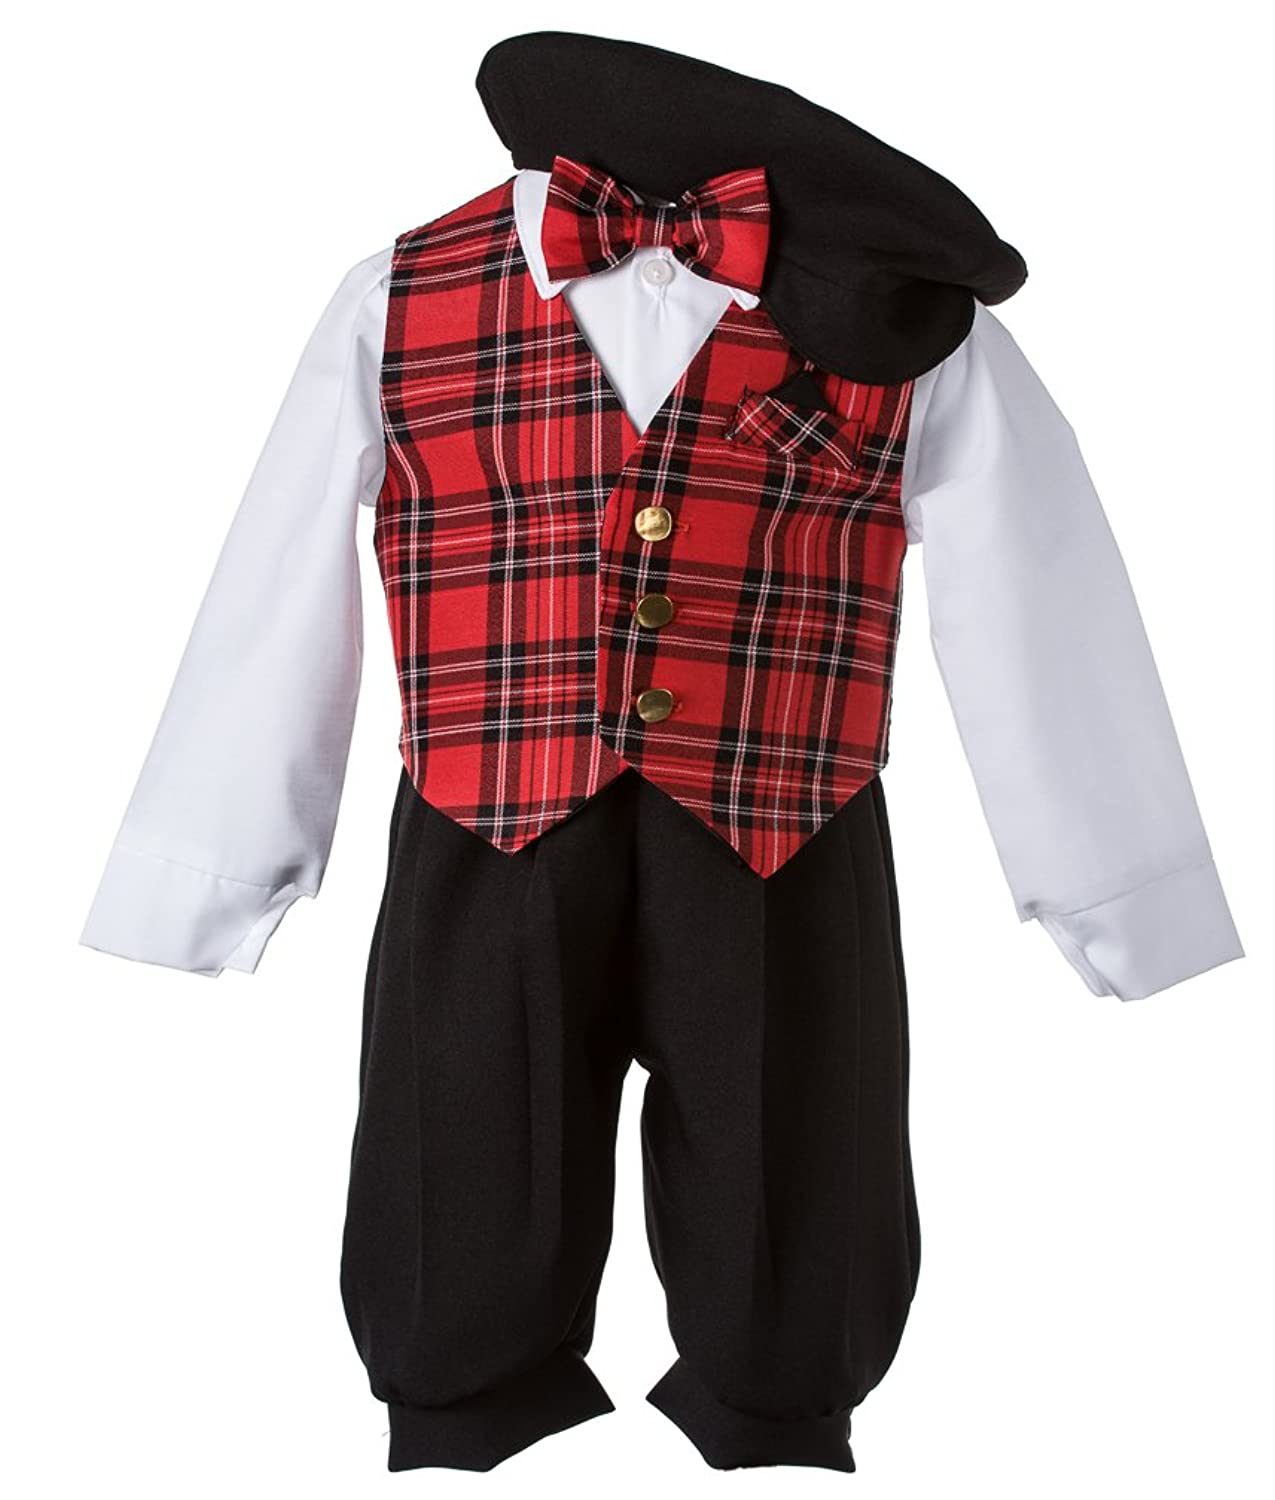 Kids 1950s Clothing & Costumes: Girls, Boys, Toddlers Tuxgear Baby Vintage Black Knickers Set with Holiday Red Plaid Bow Tie & Vest $23.89 AT vintagedancer.com